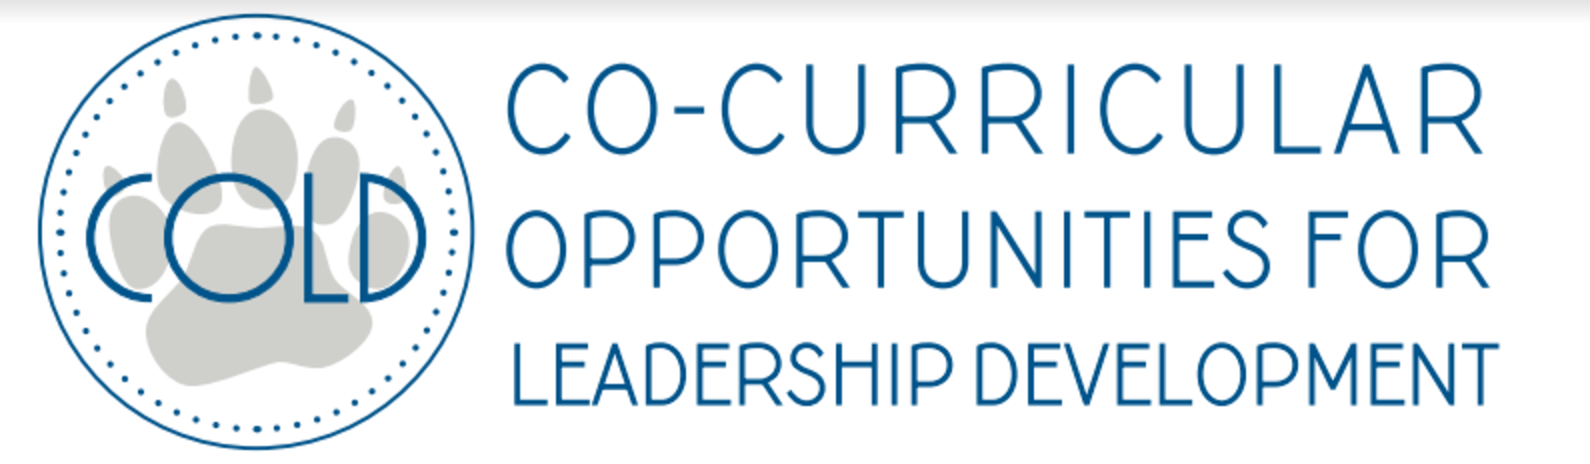 COLD co-curricular opportunities for leadership development